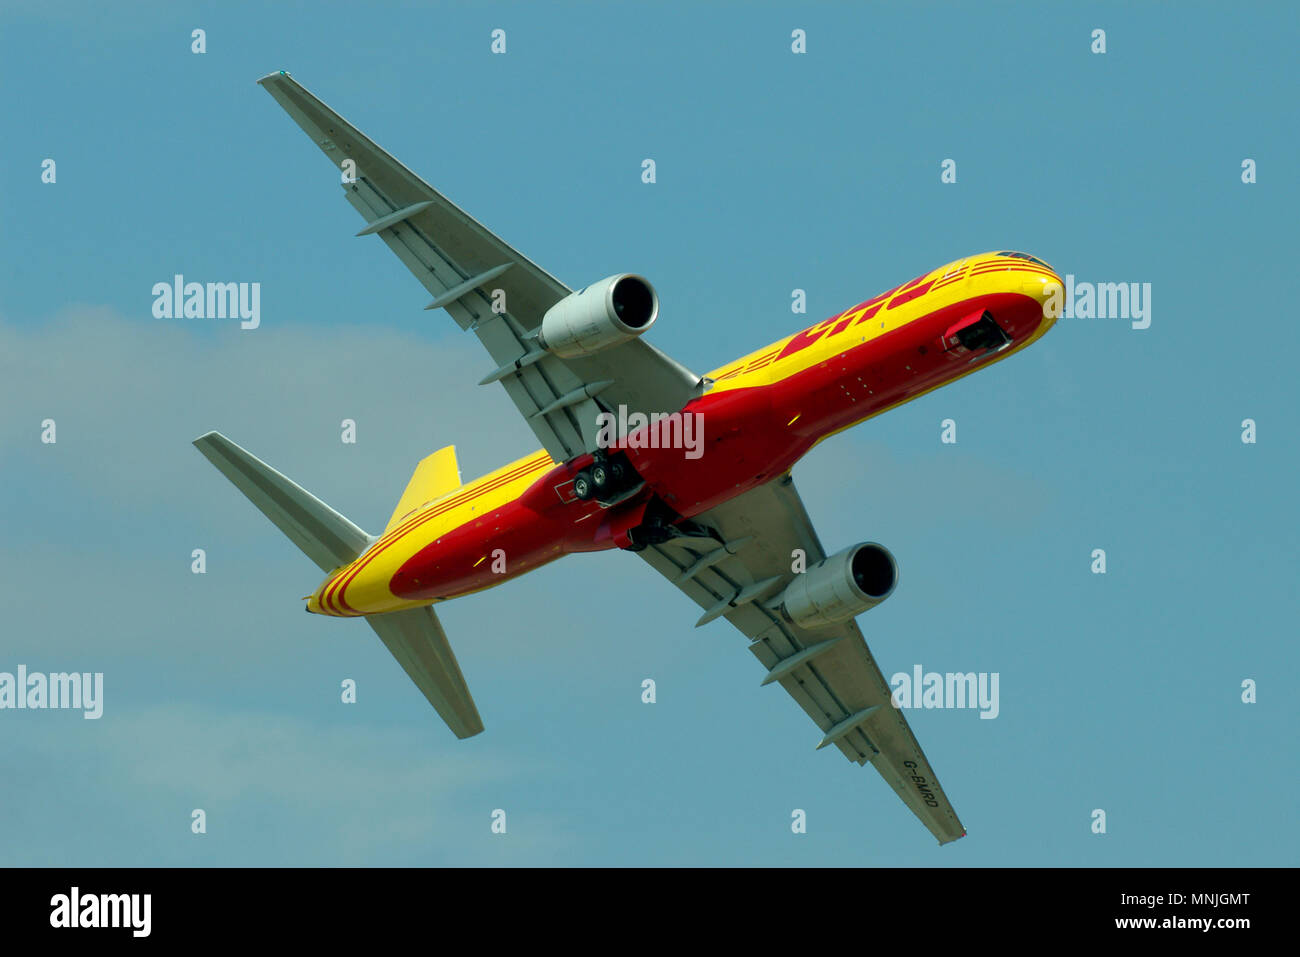 dhl-air-boeing-757-g-bmrd-cargo-transport-jet-plane-flying-at-an-airshow-boeing-757-200-space-for-copy-MNJGMT.jpg